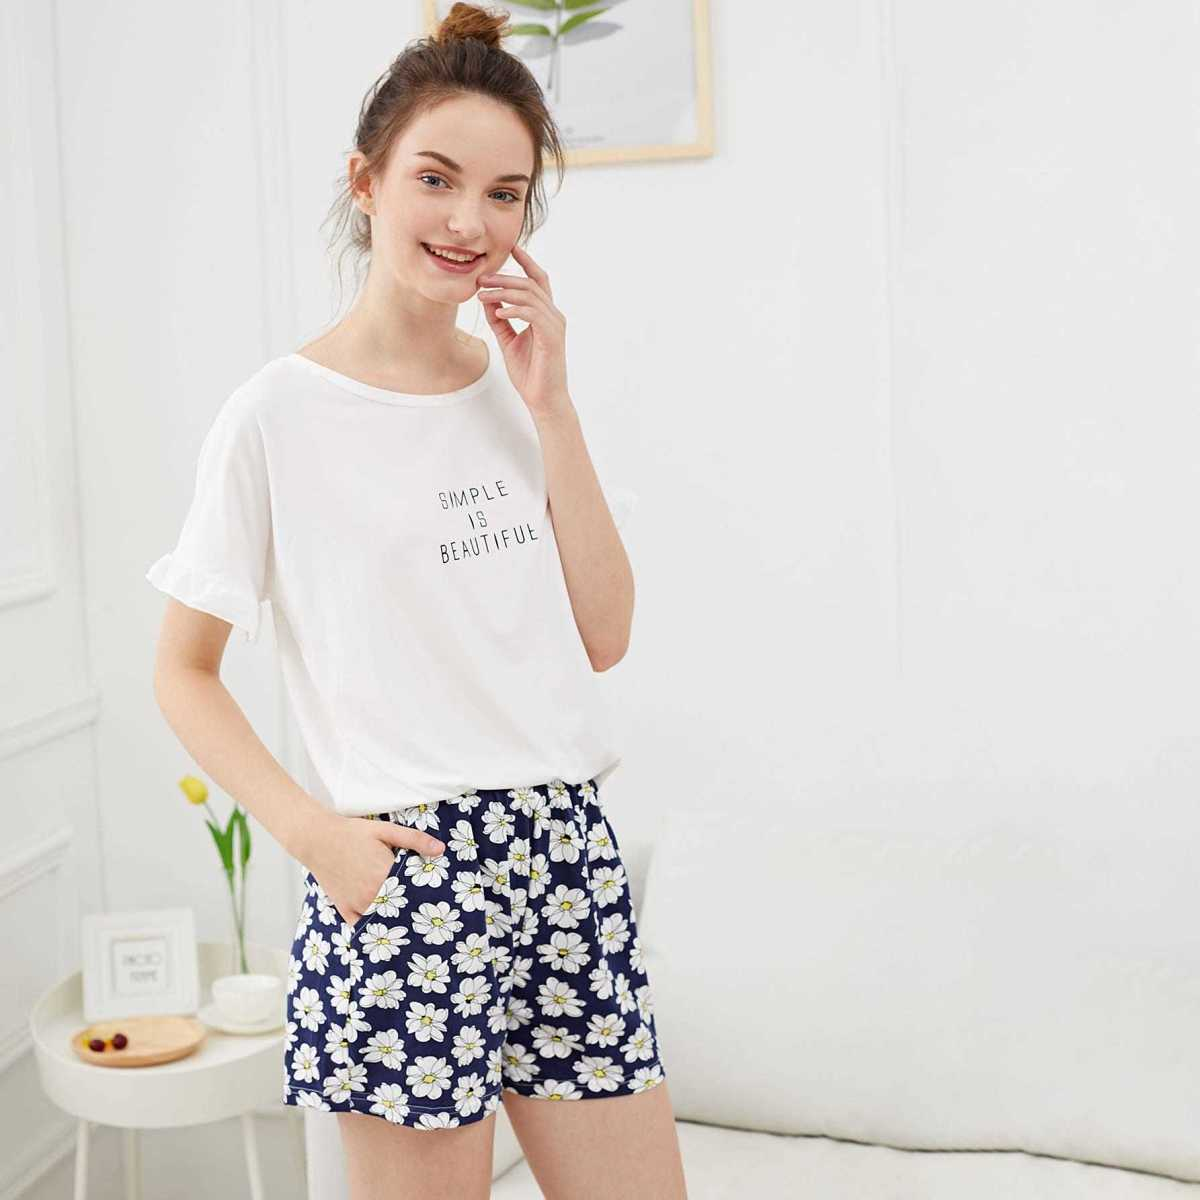 Flower & Letter Print Pajama Set in Multicolor by ROMWE on GOOFASH